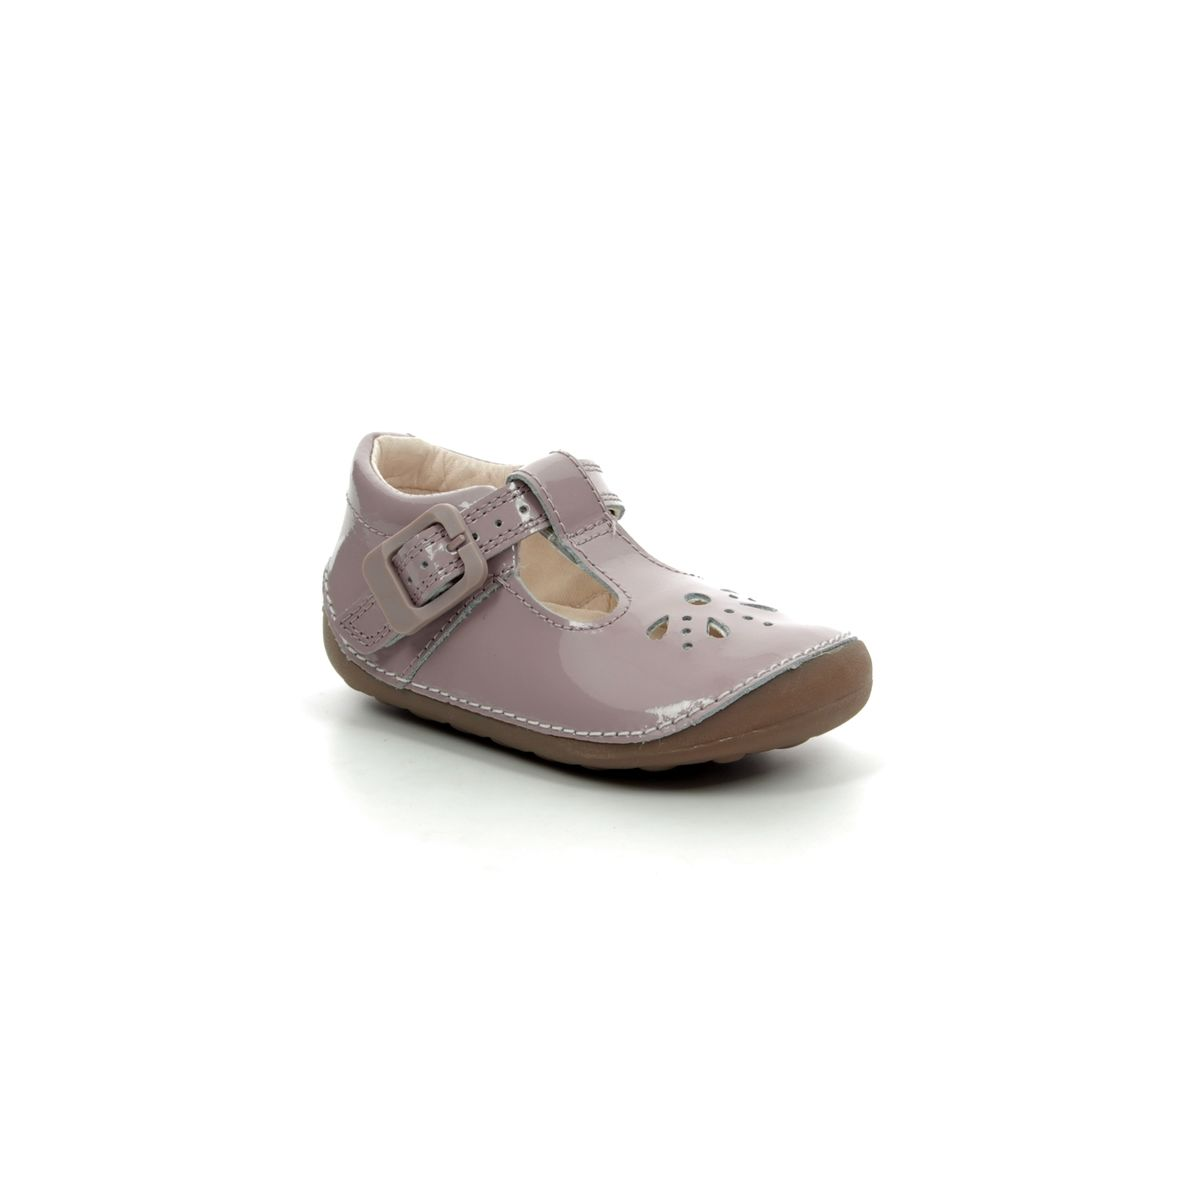 c006290b3db Clarks First Shoes - Pink - 3981 78H LITTLE WEAVE